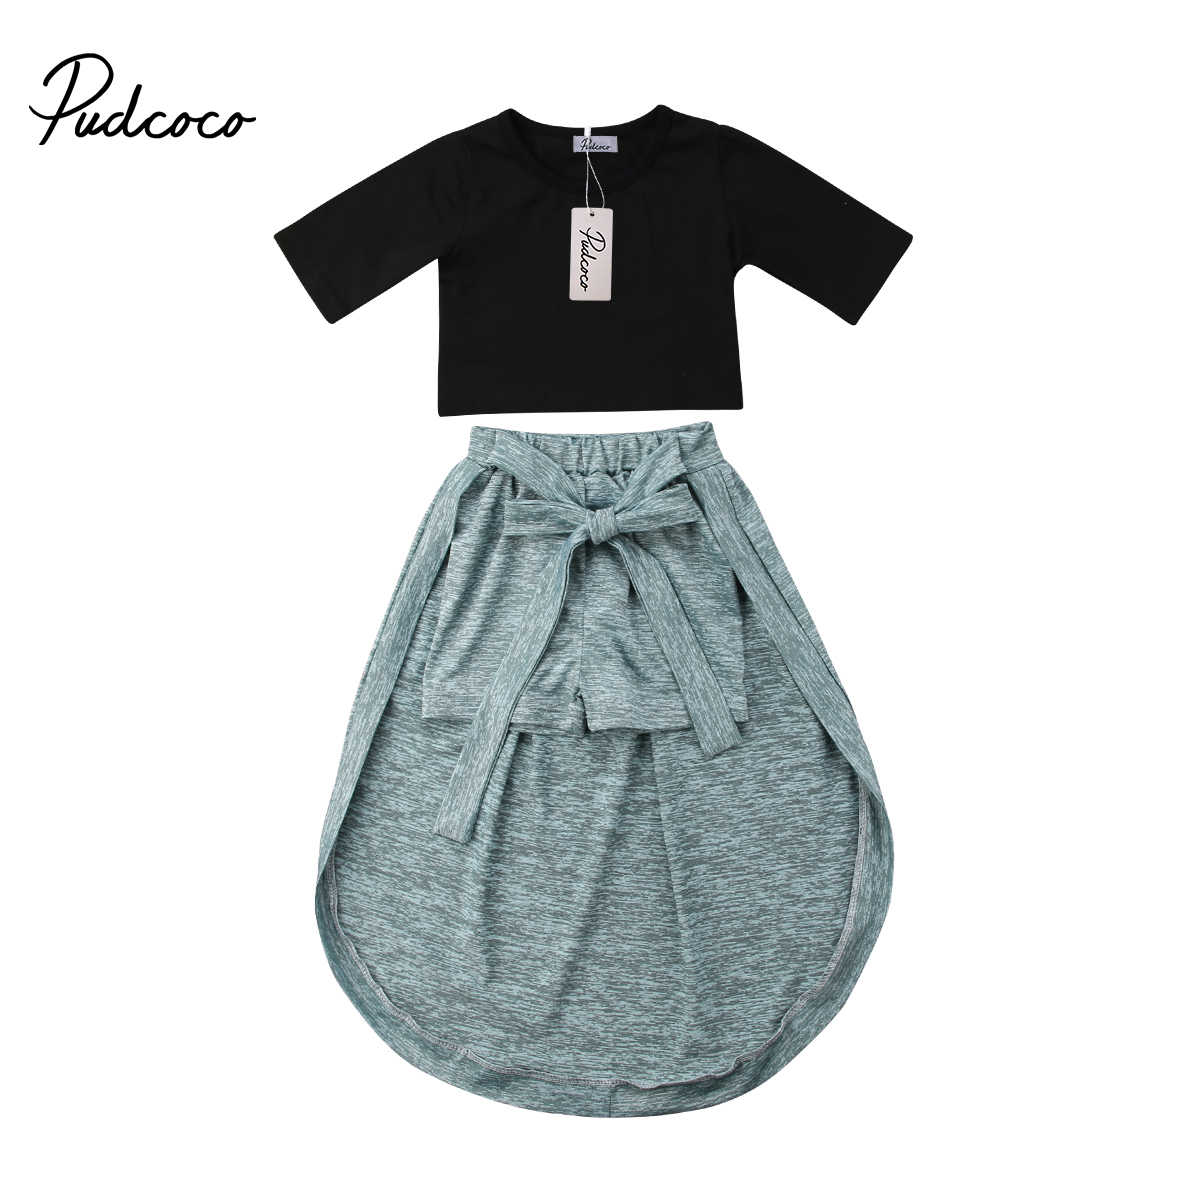 Fashion Toddler Kids Baby Girl Short Sleeve Top Skirts Clothes Outfits Sunsuit